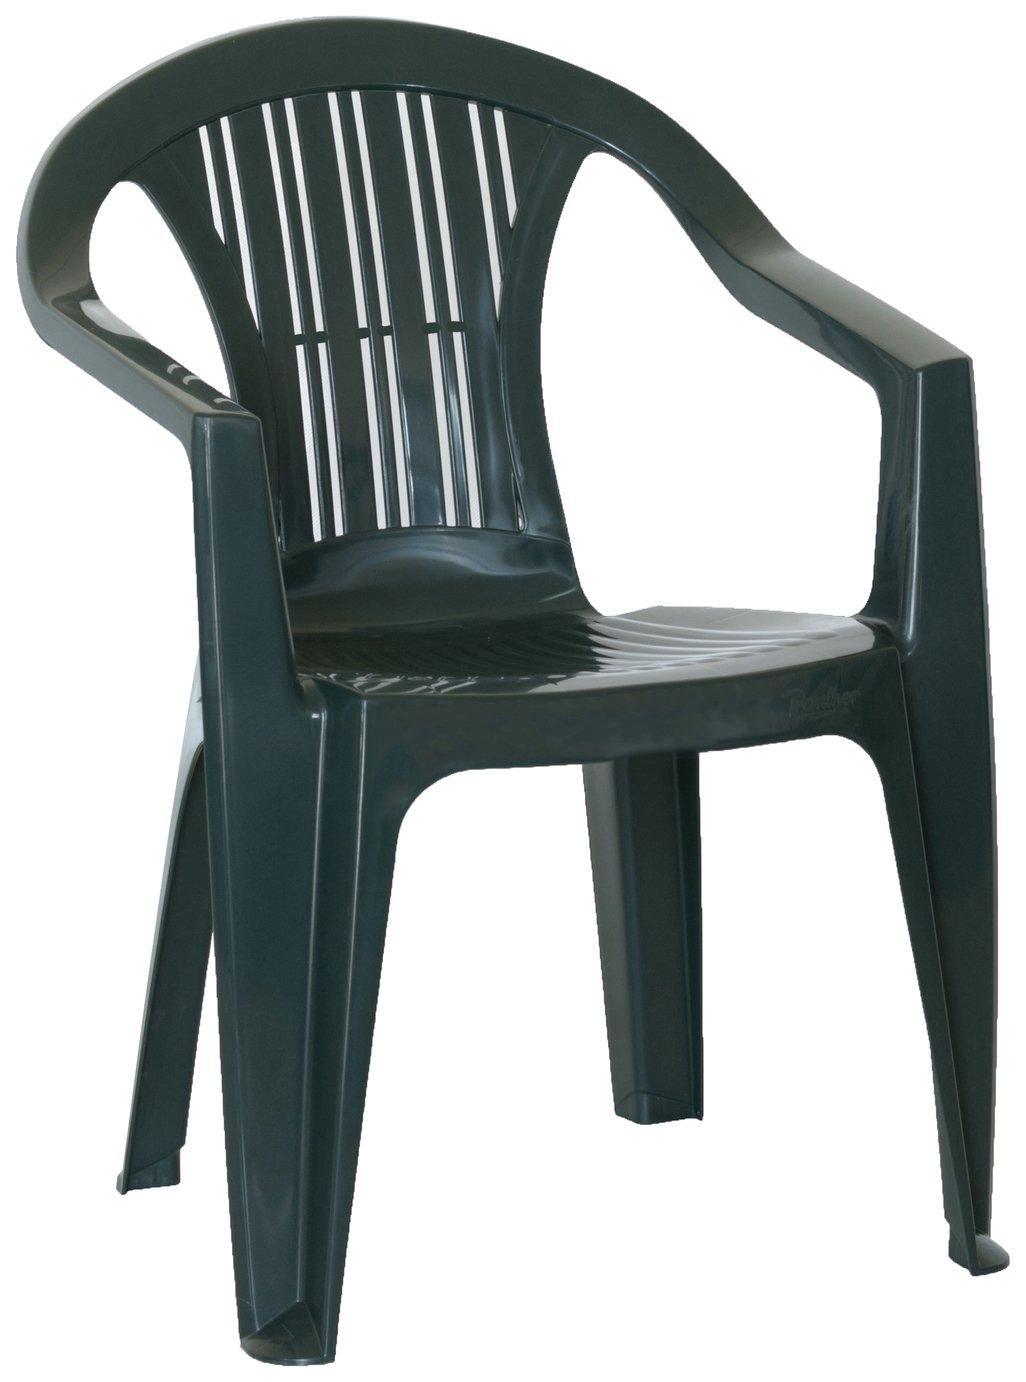 buy home stacking chair - ratak green at argos.co.uk - your online